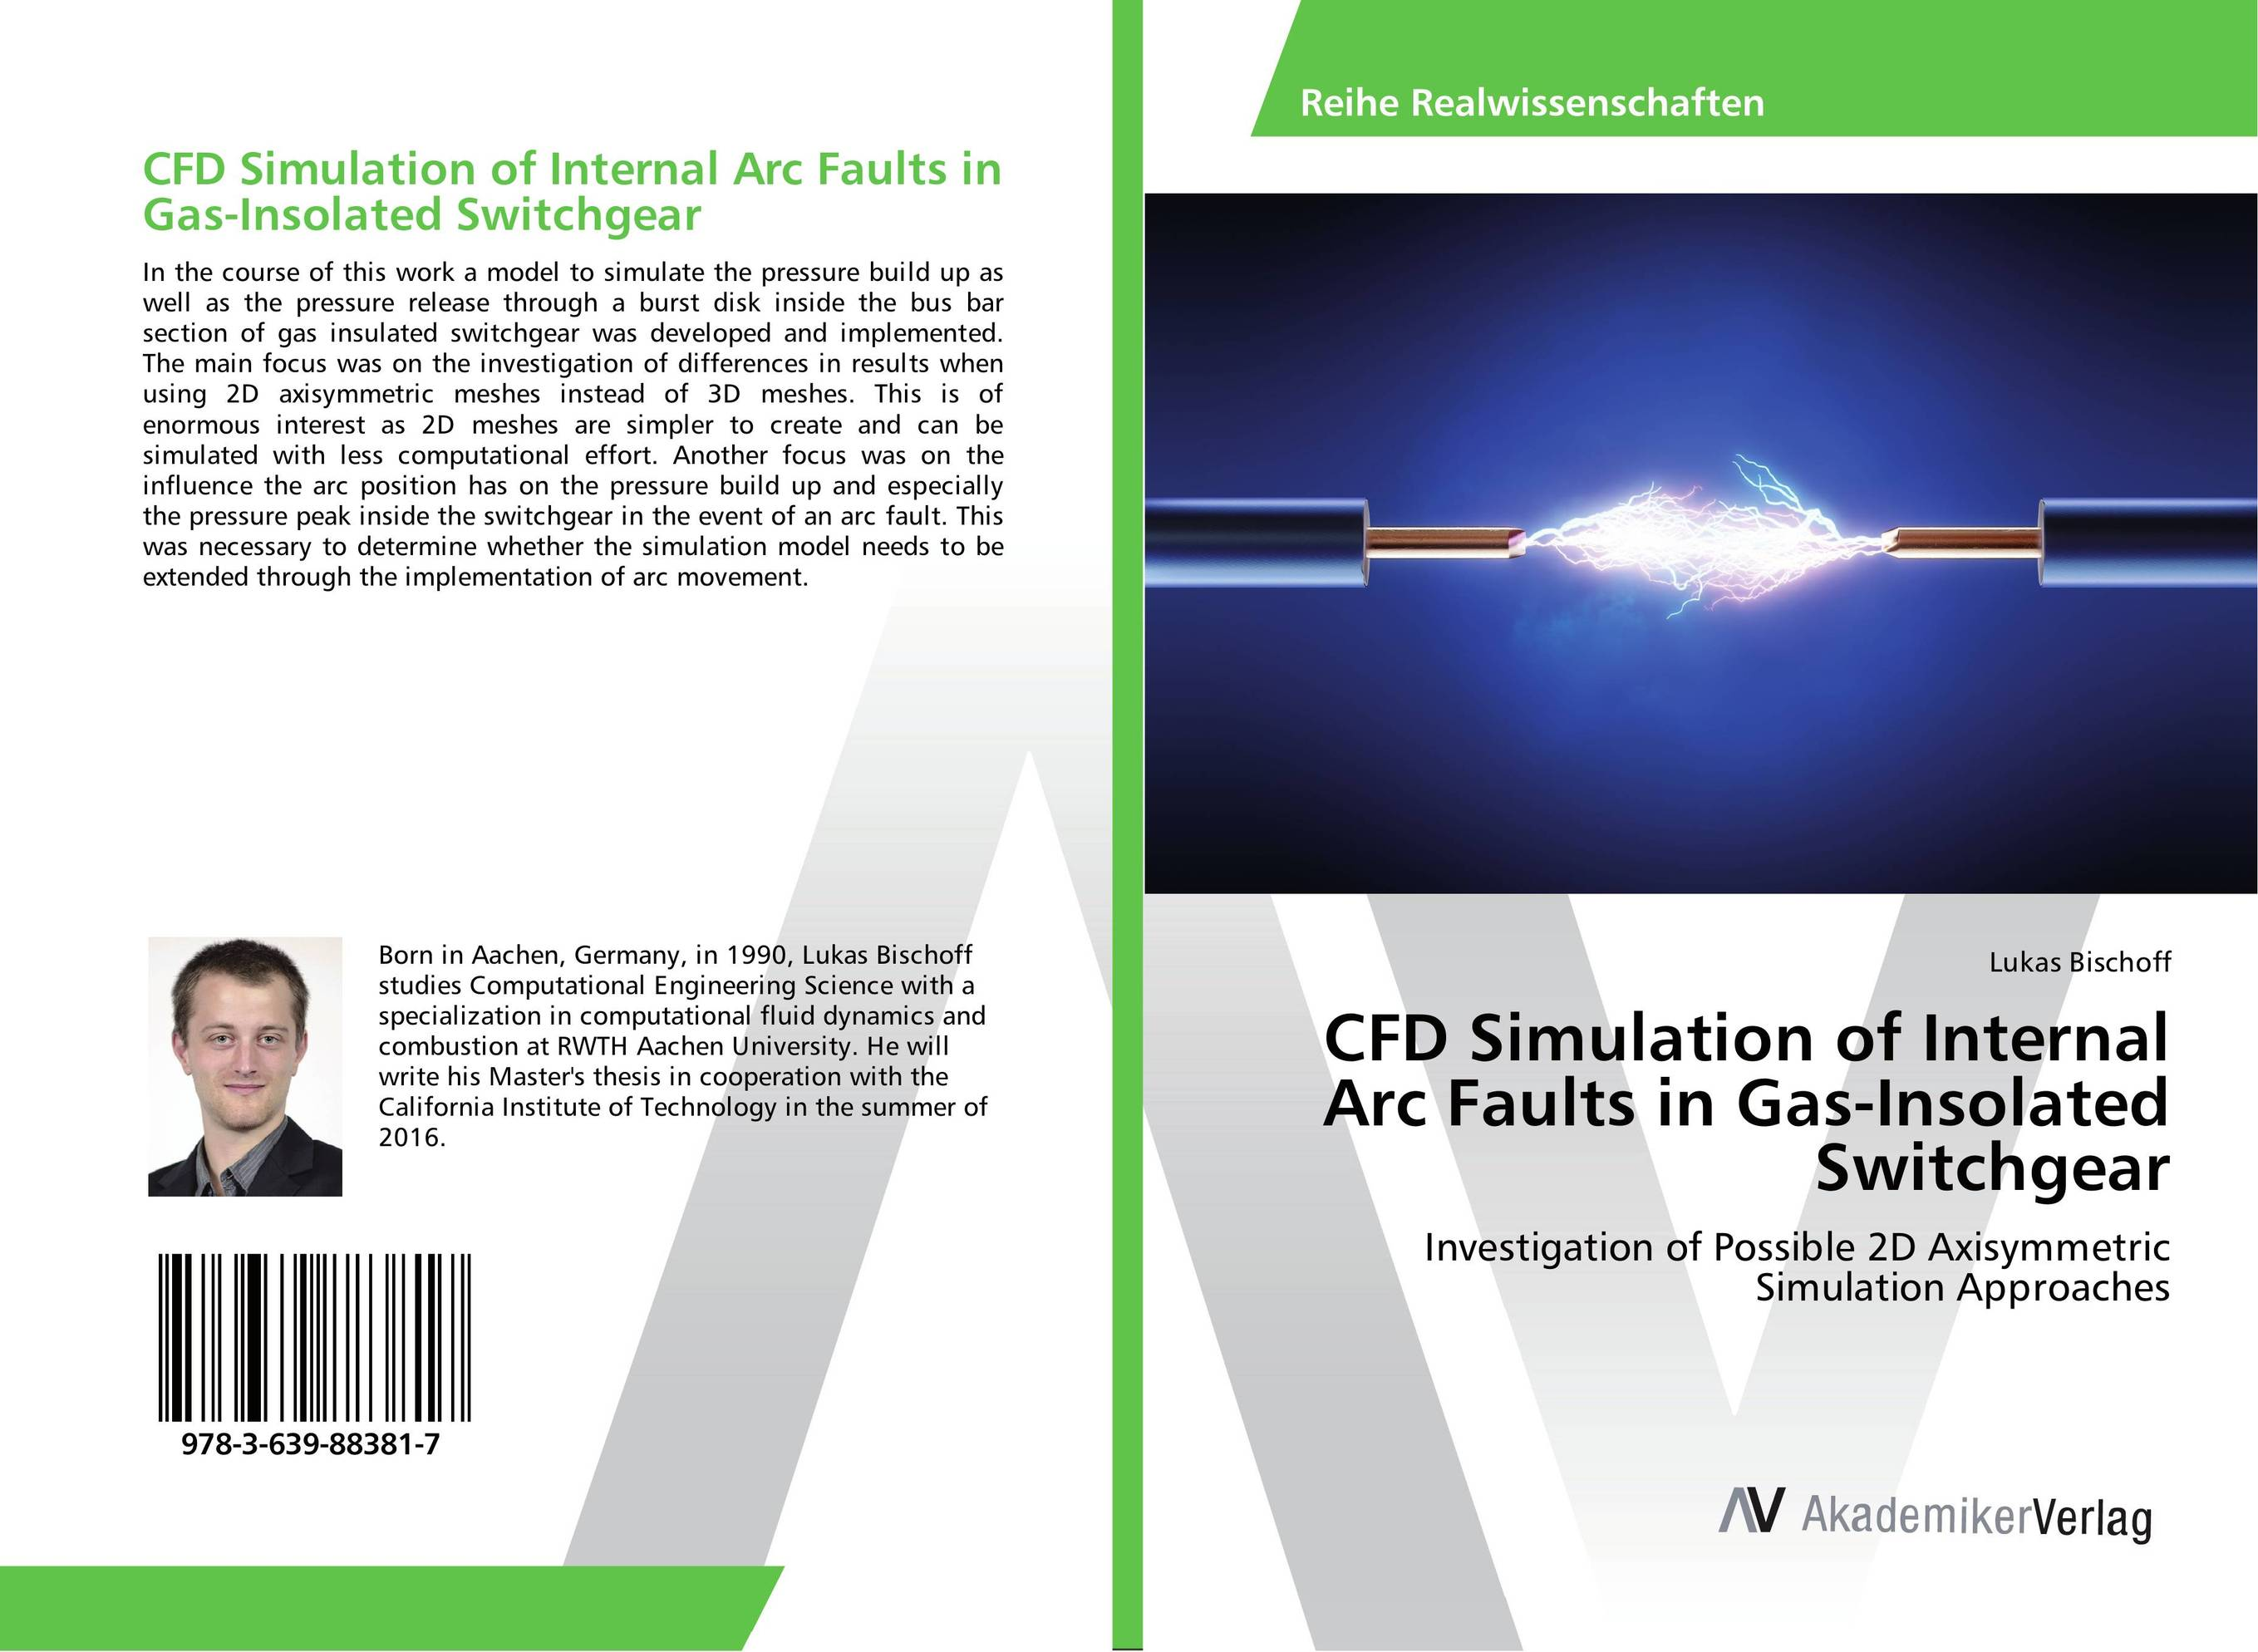 CFD Simulation of Internal Arc Faults in Gas-Insolated Switchgear the destruction of tilted arc – documents